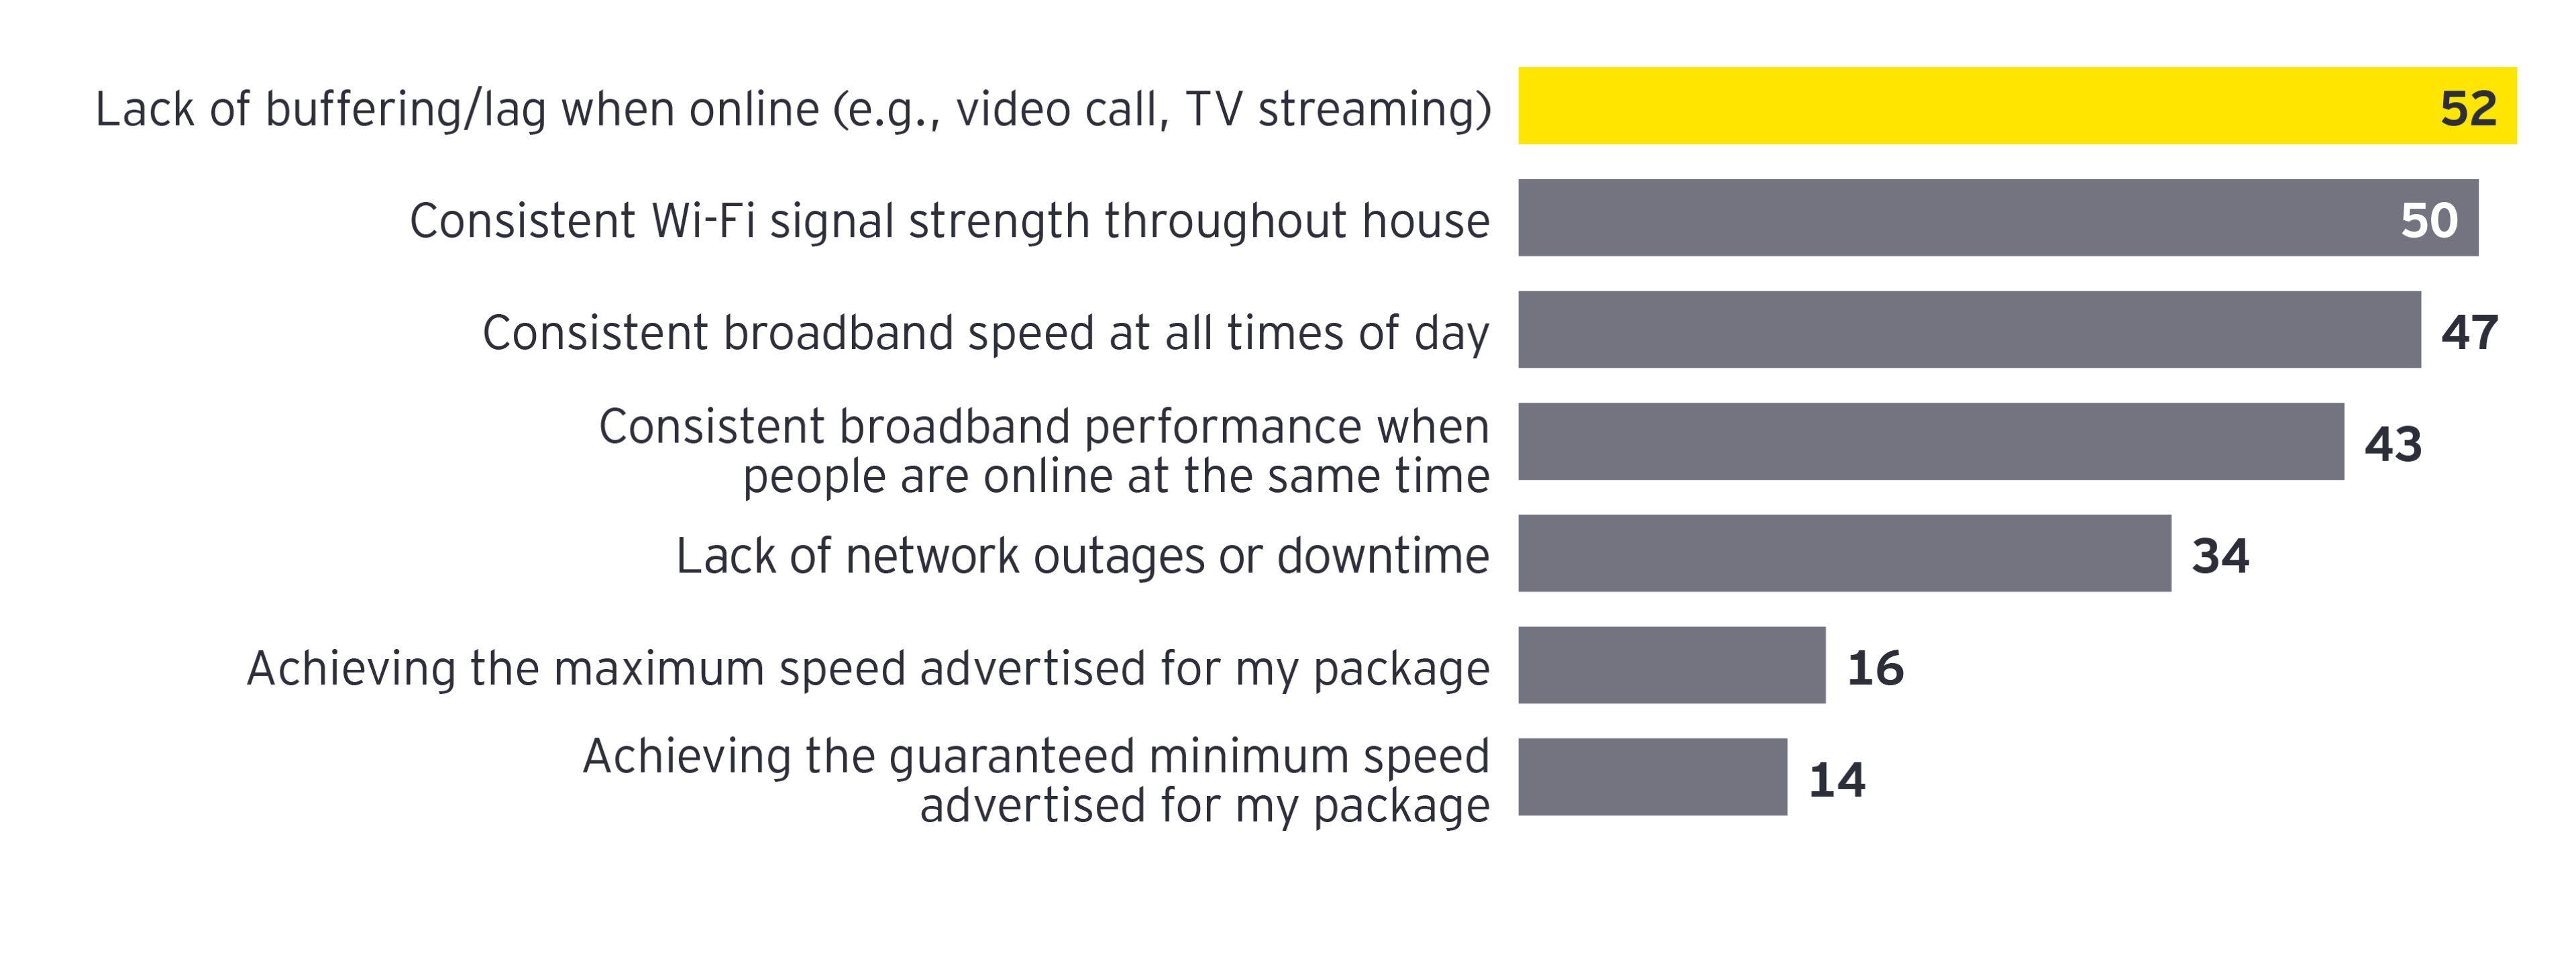 Stats of reliability of your broadband connection